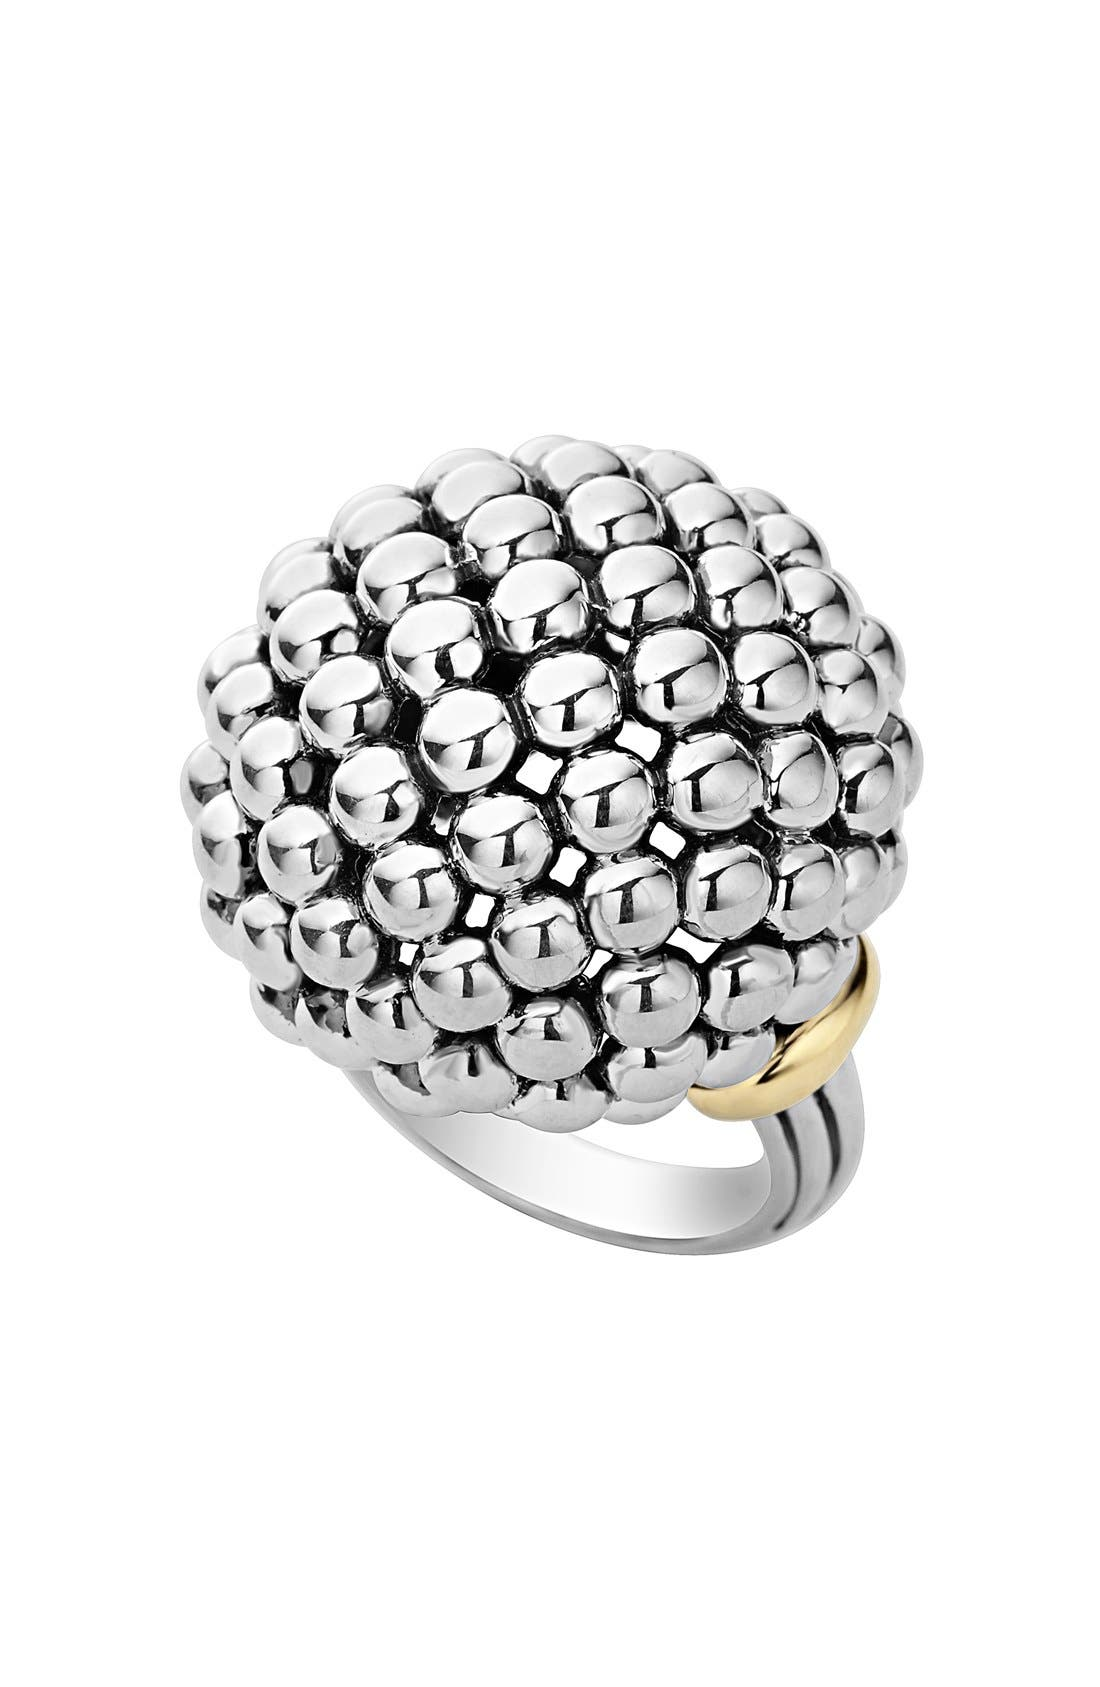 LAGOS 'Caviar Forever' Large Dome Ring